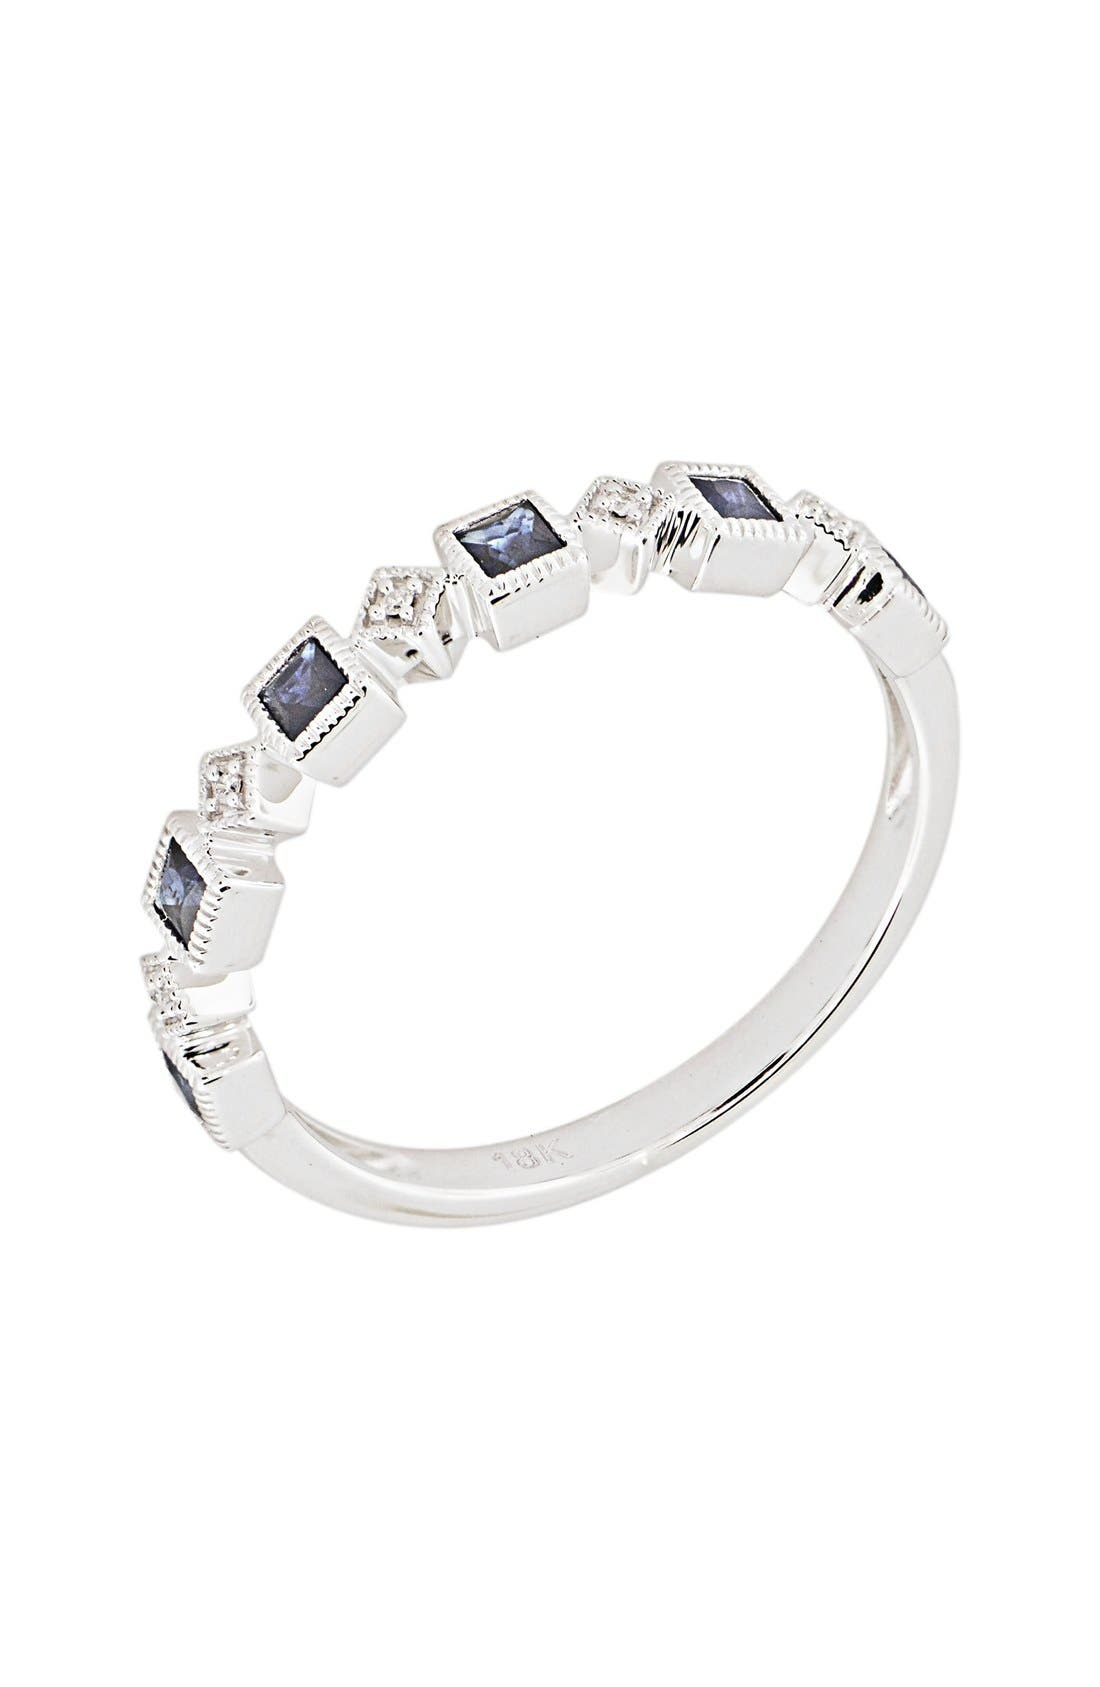 Stackable Diamond & Sapphire Band Ring,                         Main,                         color, White Gold/ Blue Sapphire